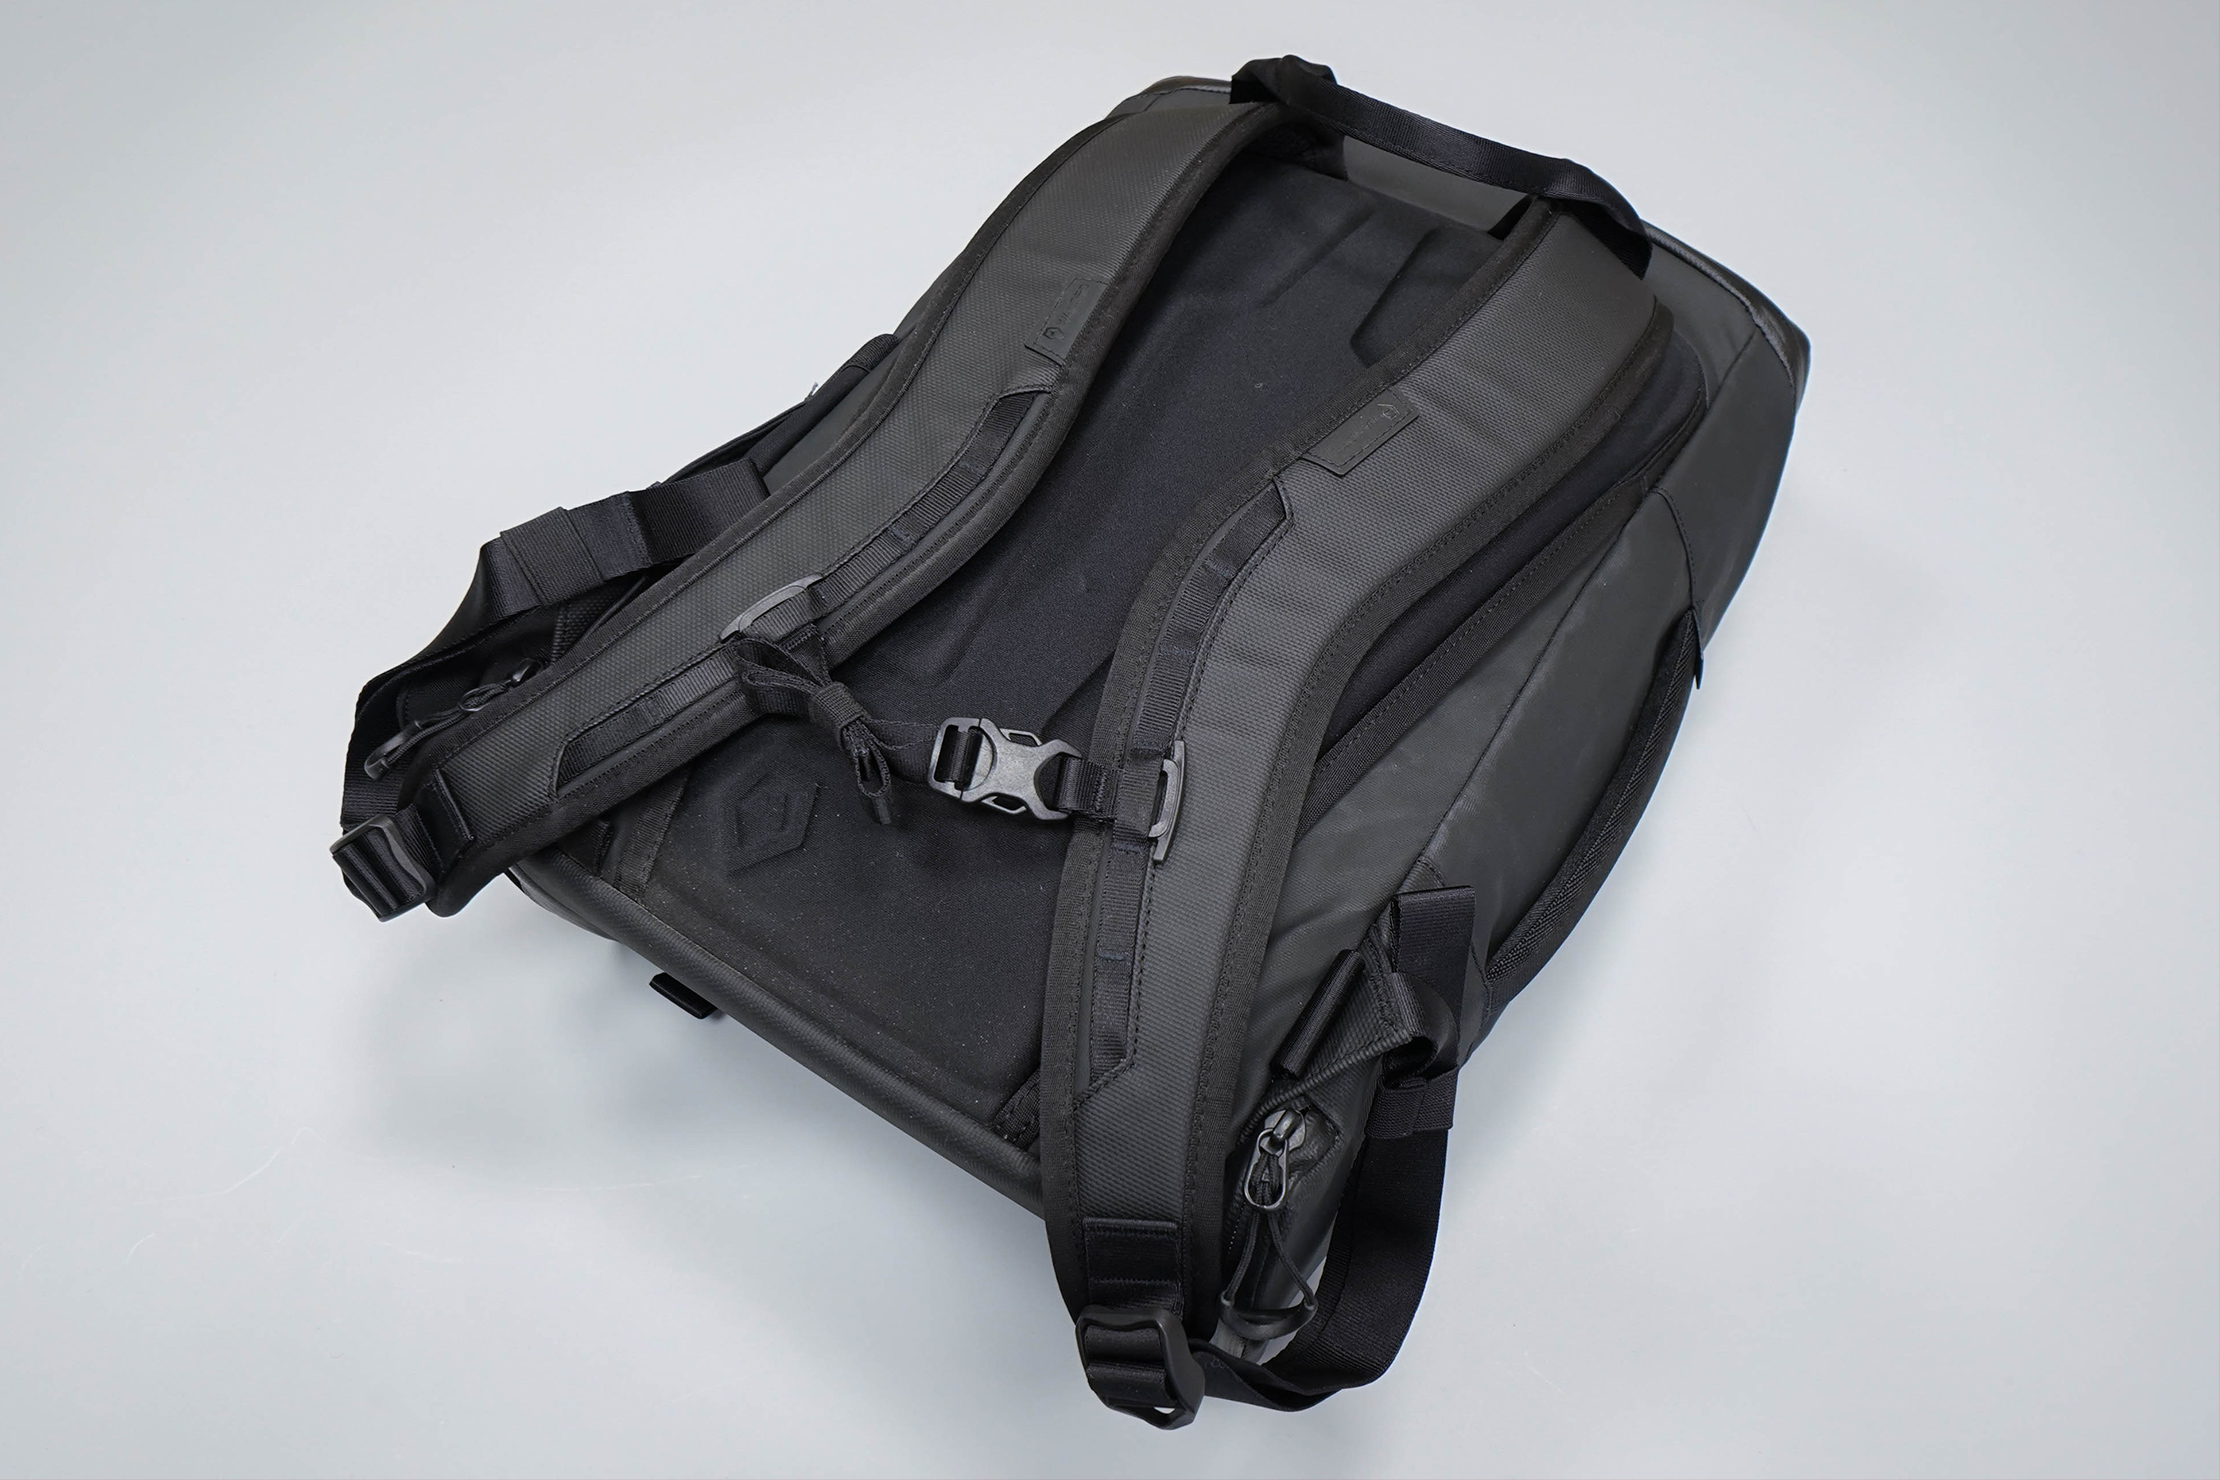 WANDRD DUO Daypack Harness System